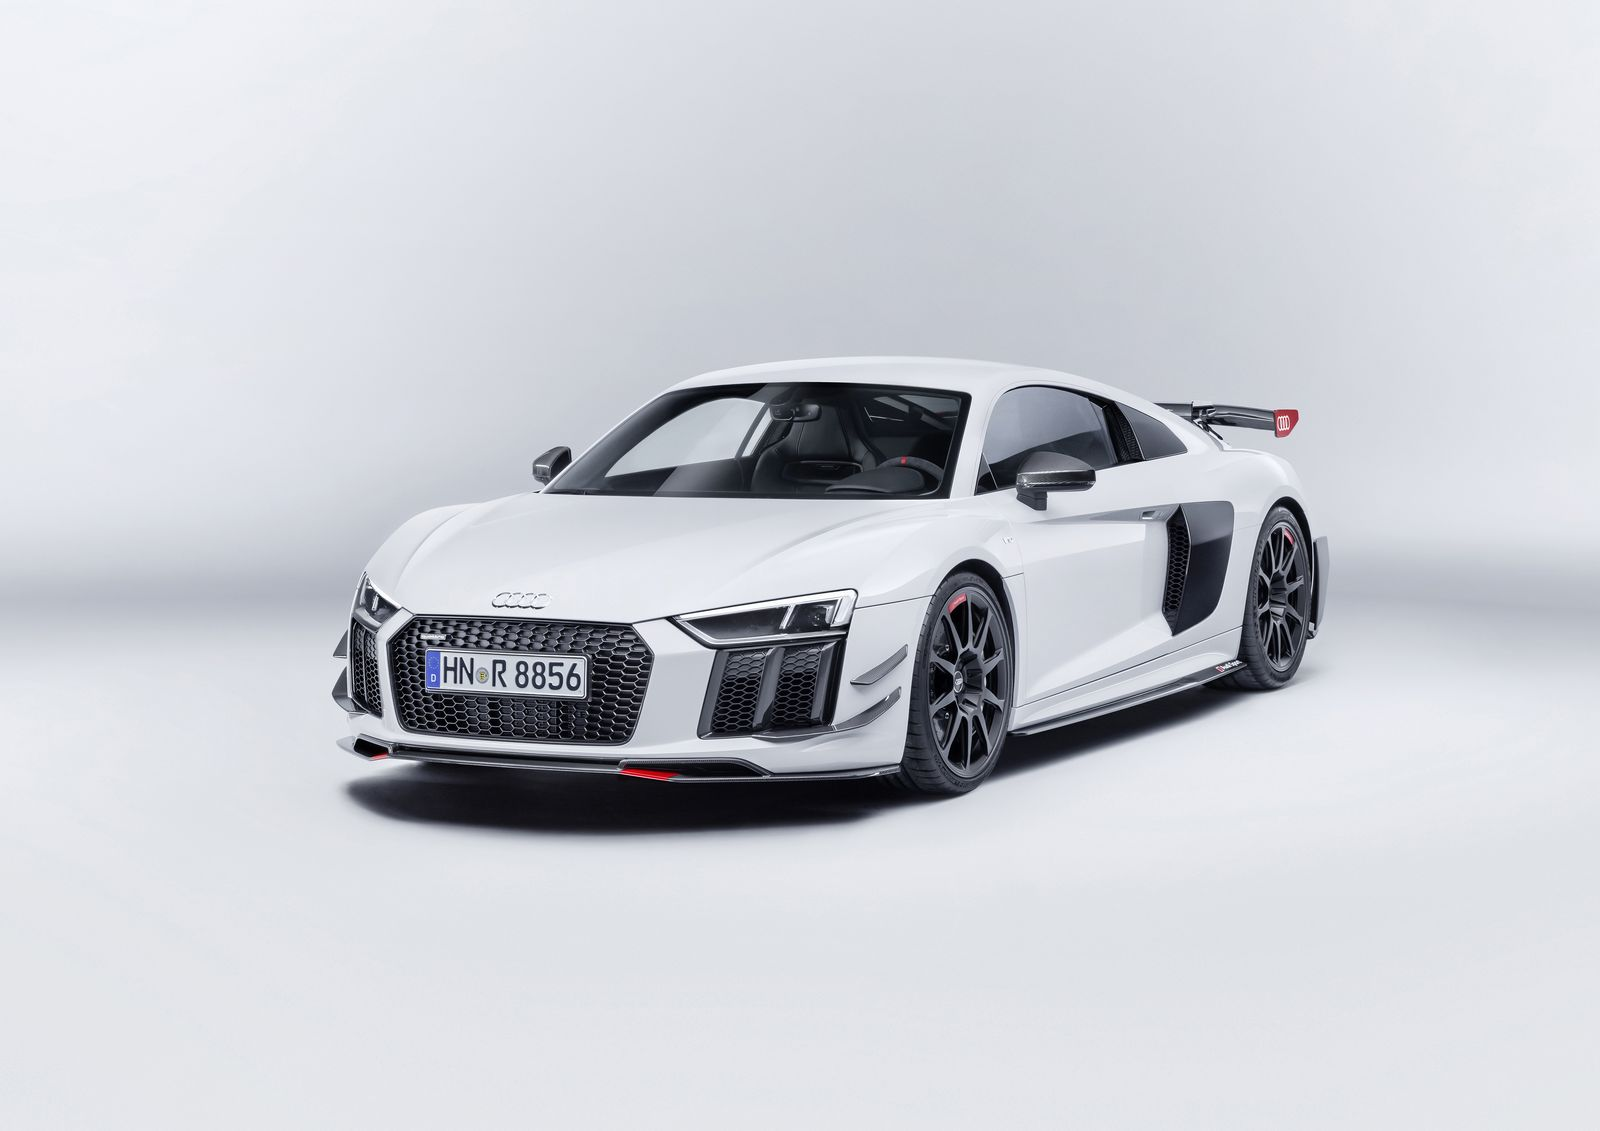 audi sport performance parts look the biz on r8 and tt autoevolution. Black Bedroom Furniture Sets. Home Design Ideas